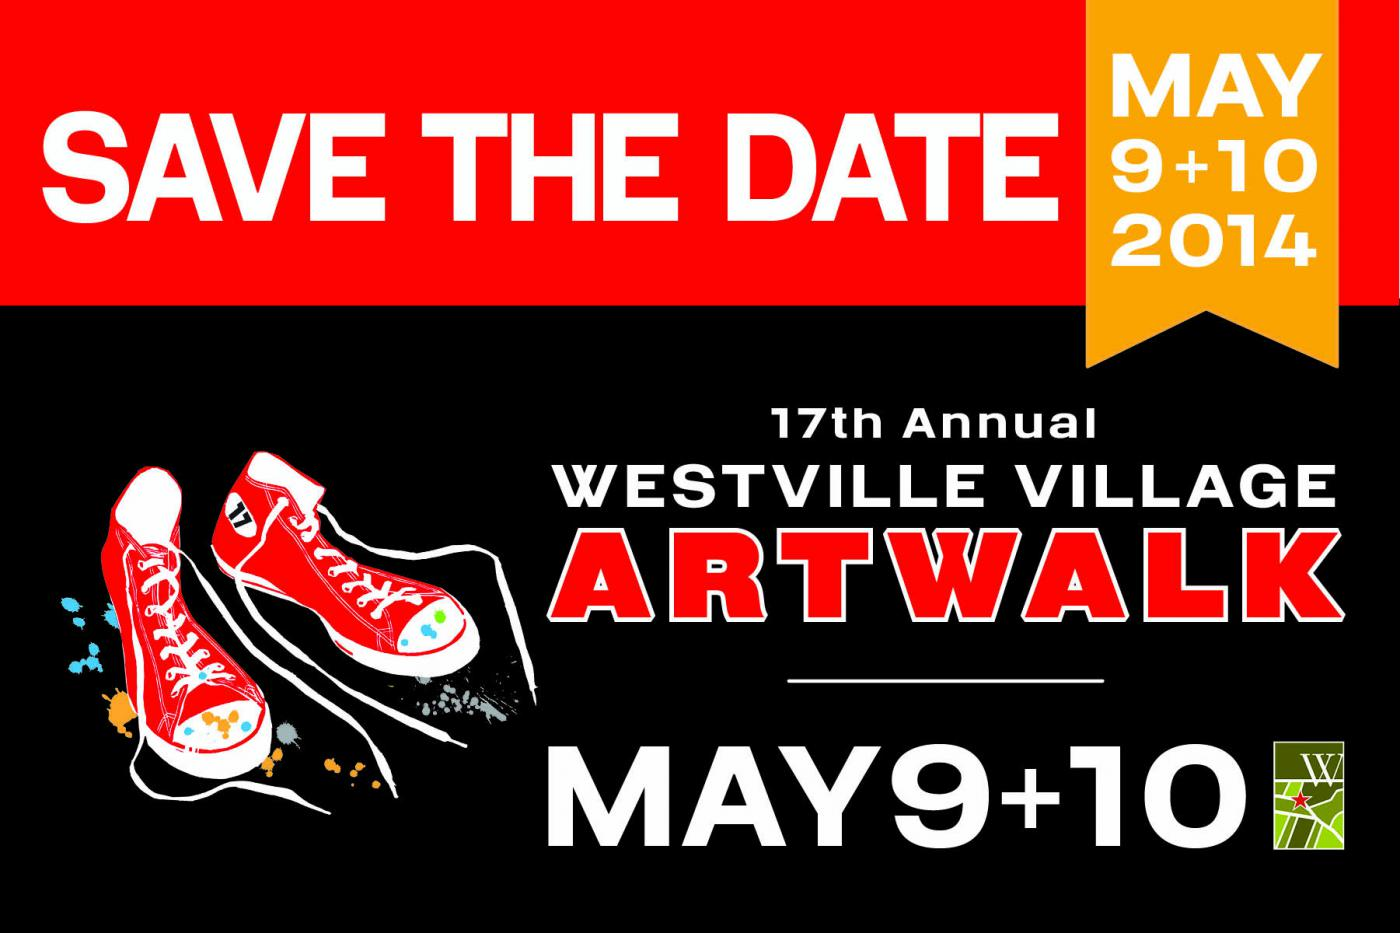 2014 ArtWalk Save the Date